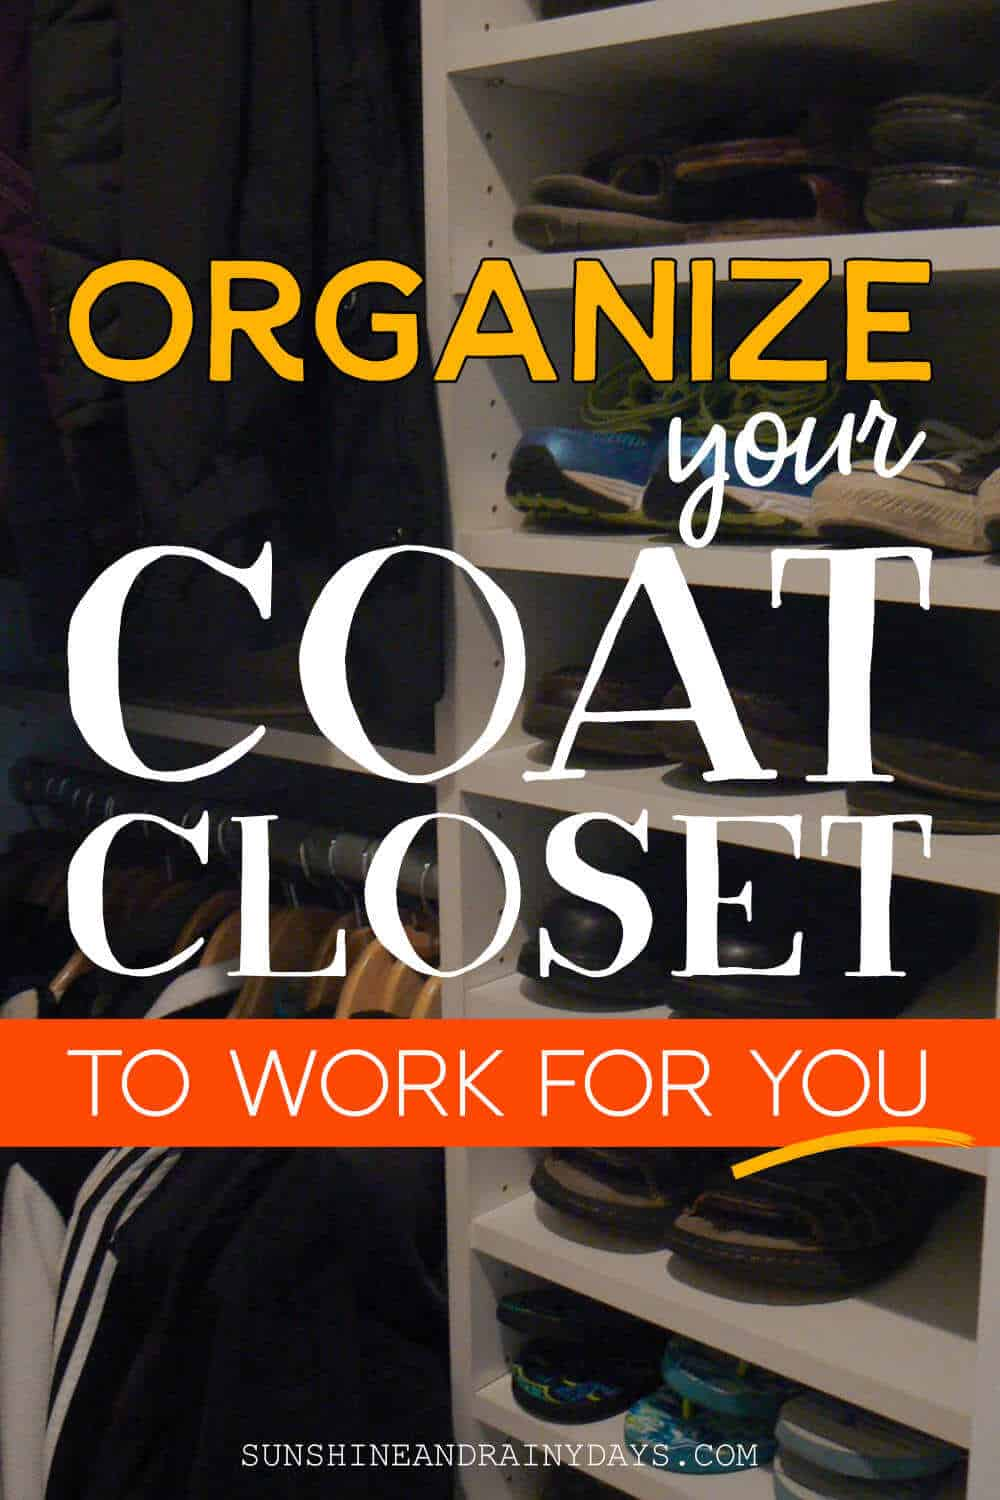 Organize the coat closet to work for you!